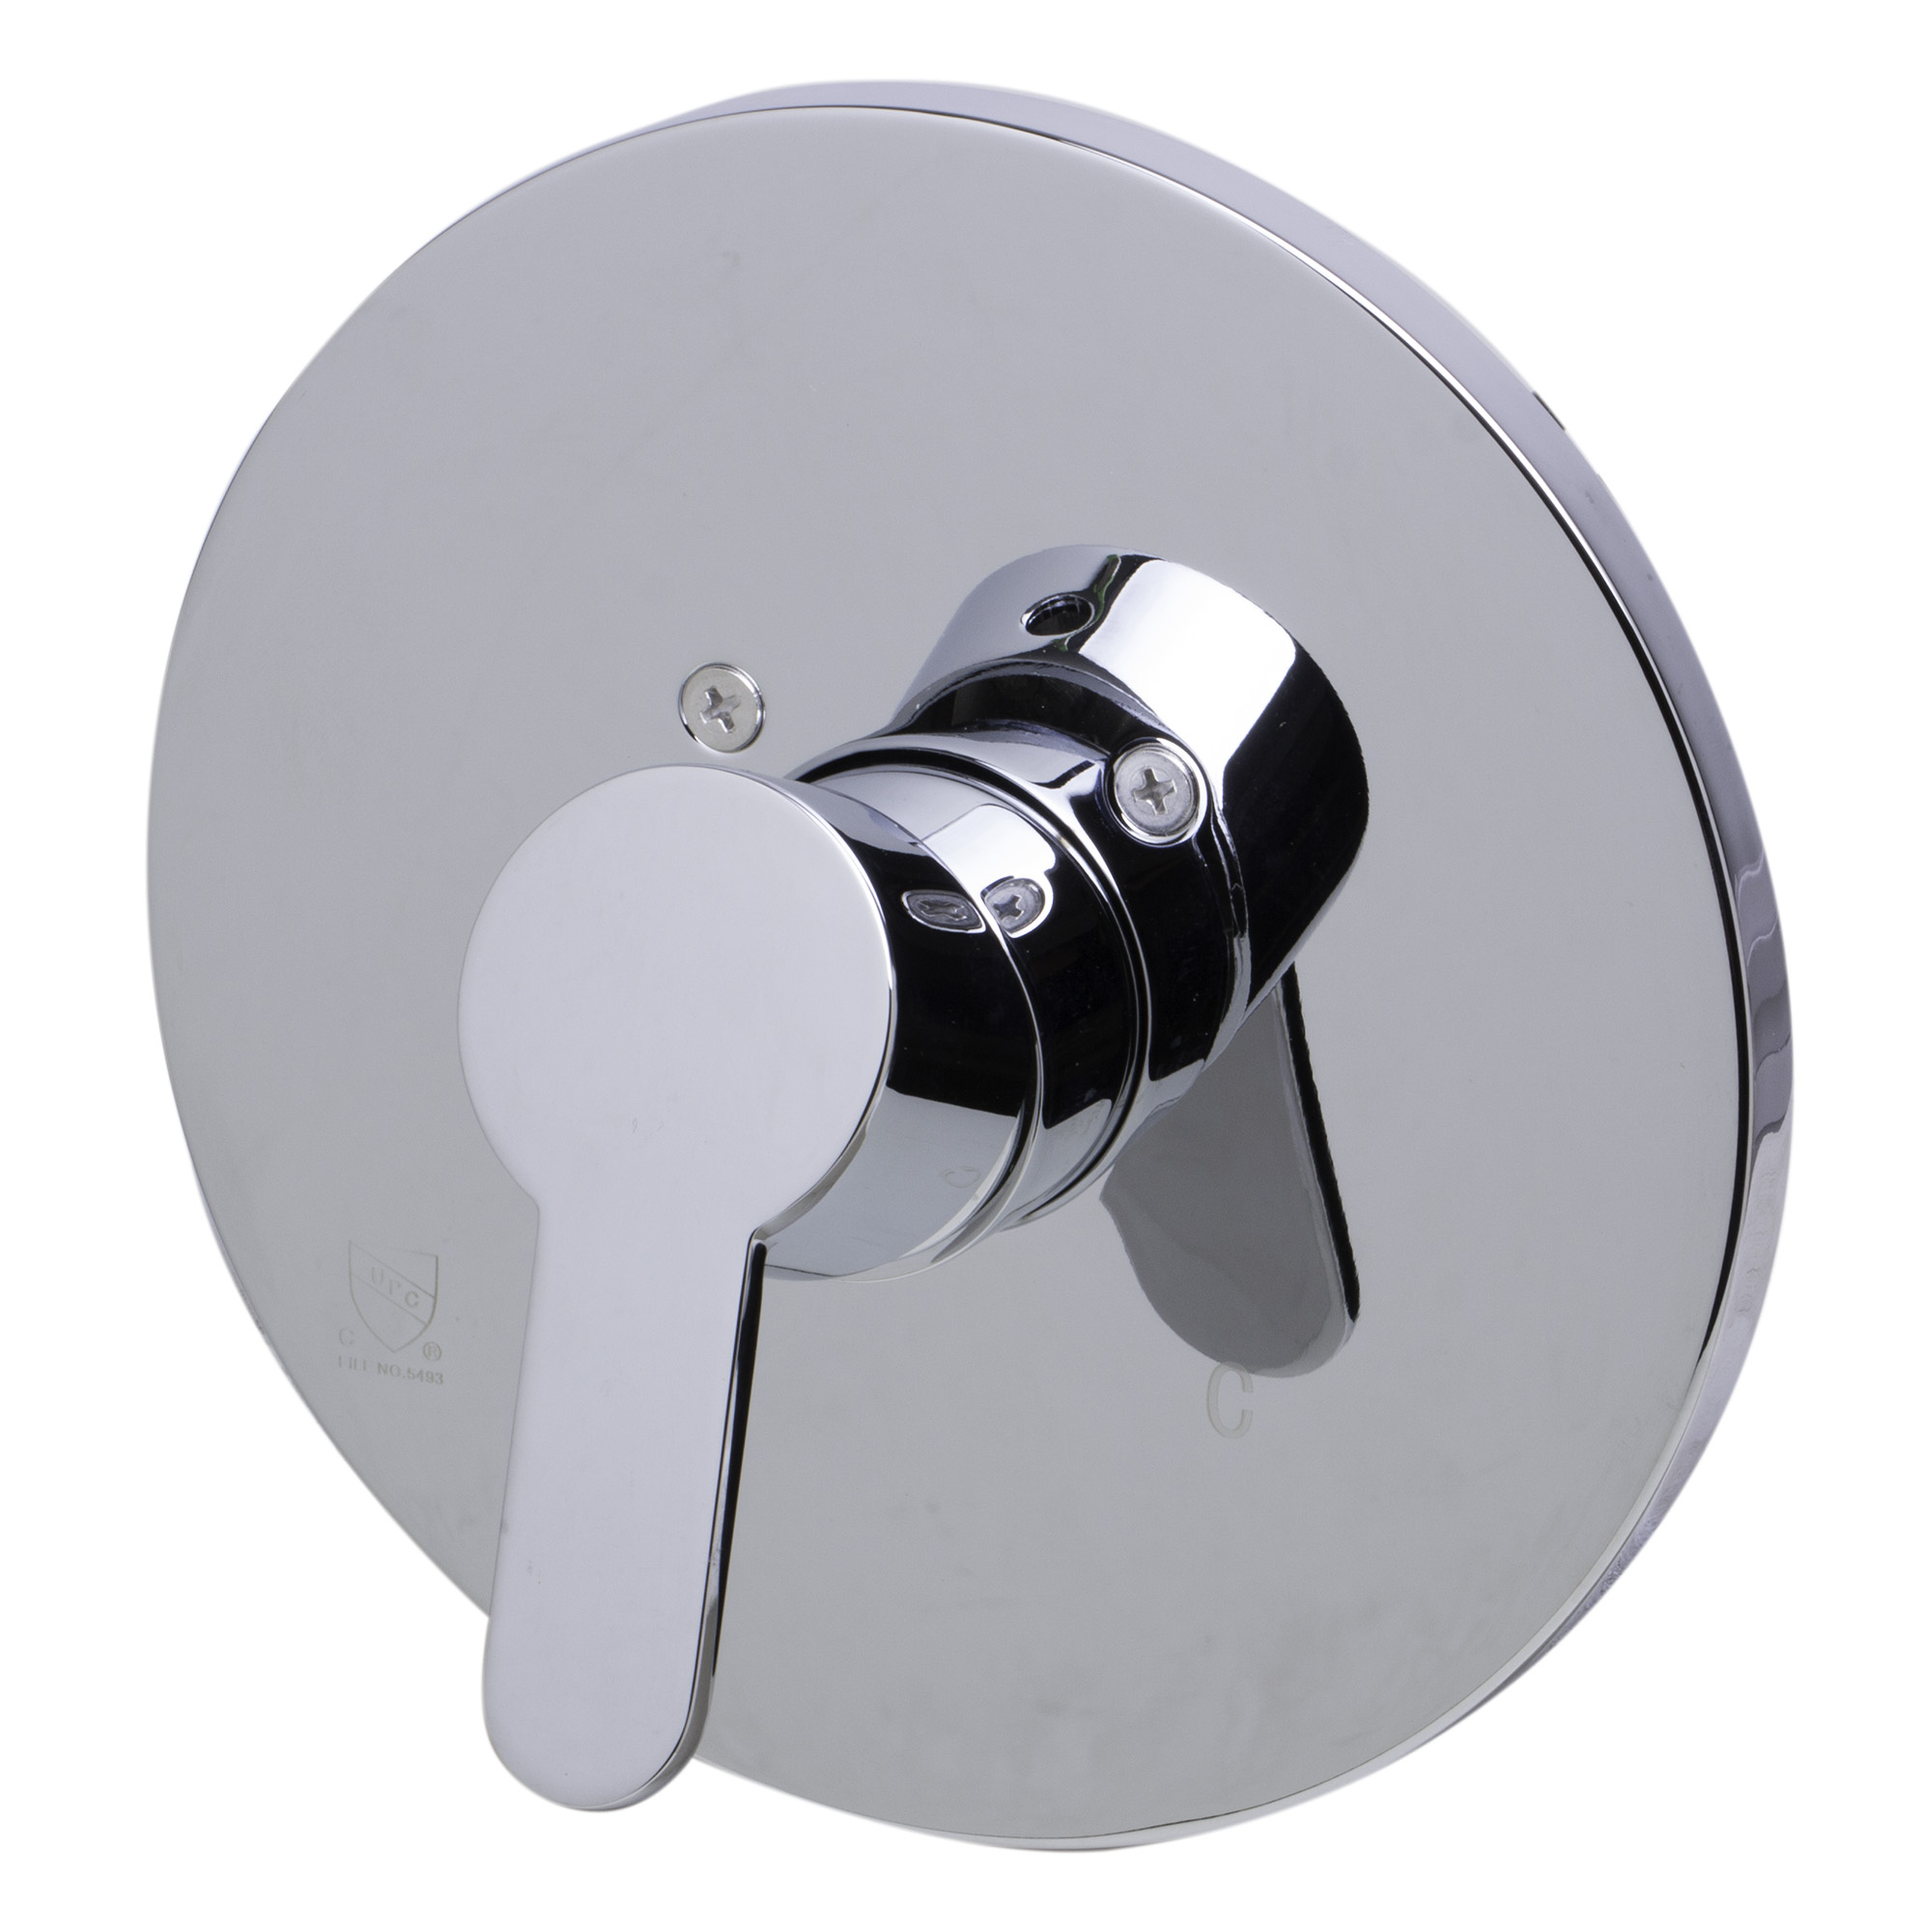 ALFI brand AB3001-PC Polished Chrome Shower Valve Mixer with Rounded Lever Handle